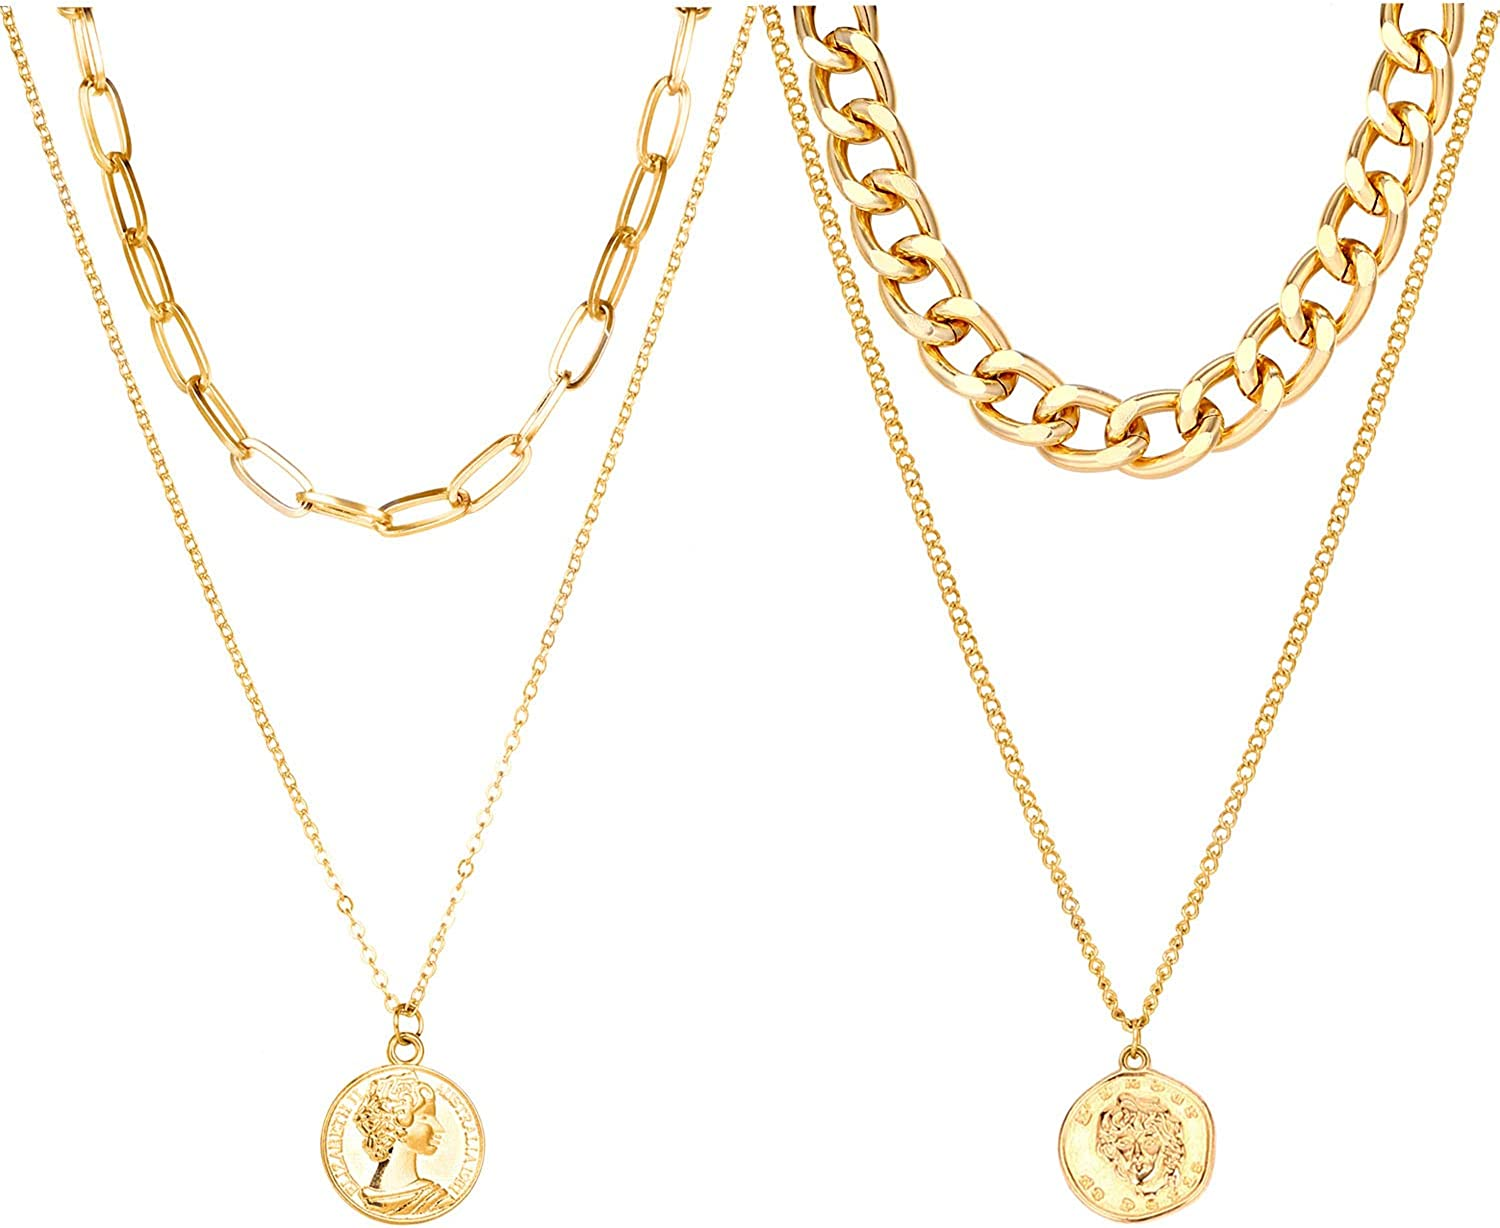 Set of 2 Gold Layered Necklaces Link Coin Pendant Chain Necklace for Men Women Girls